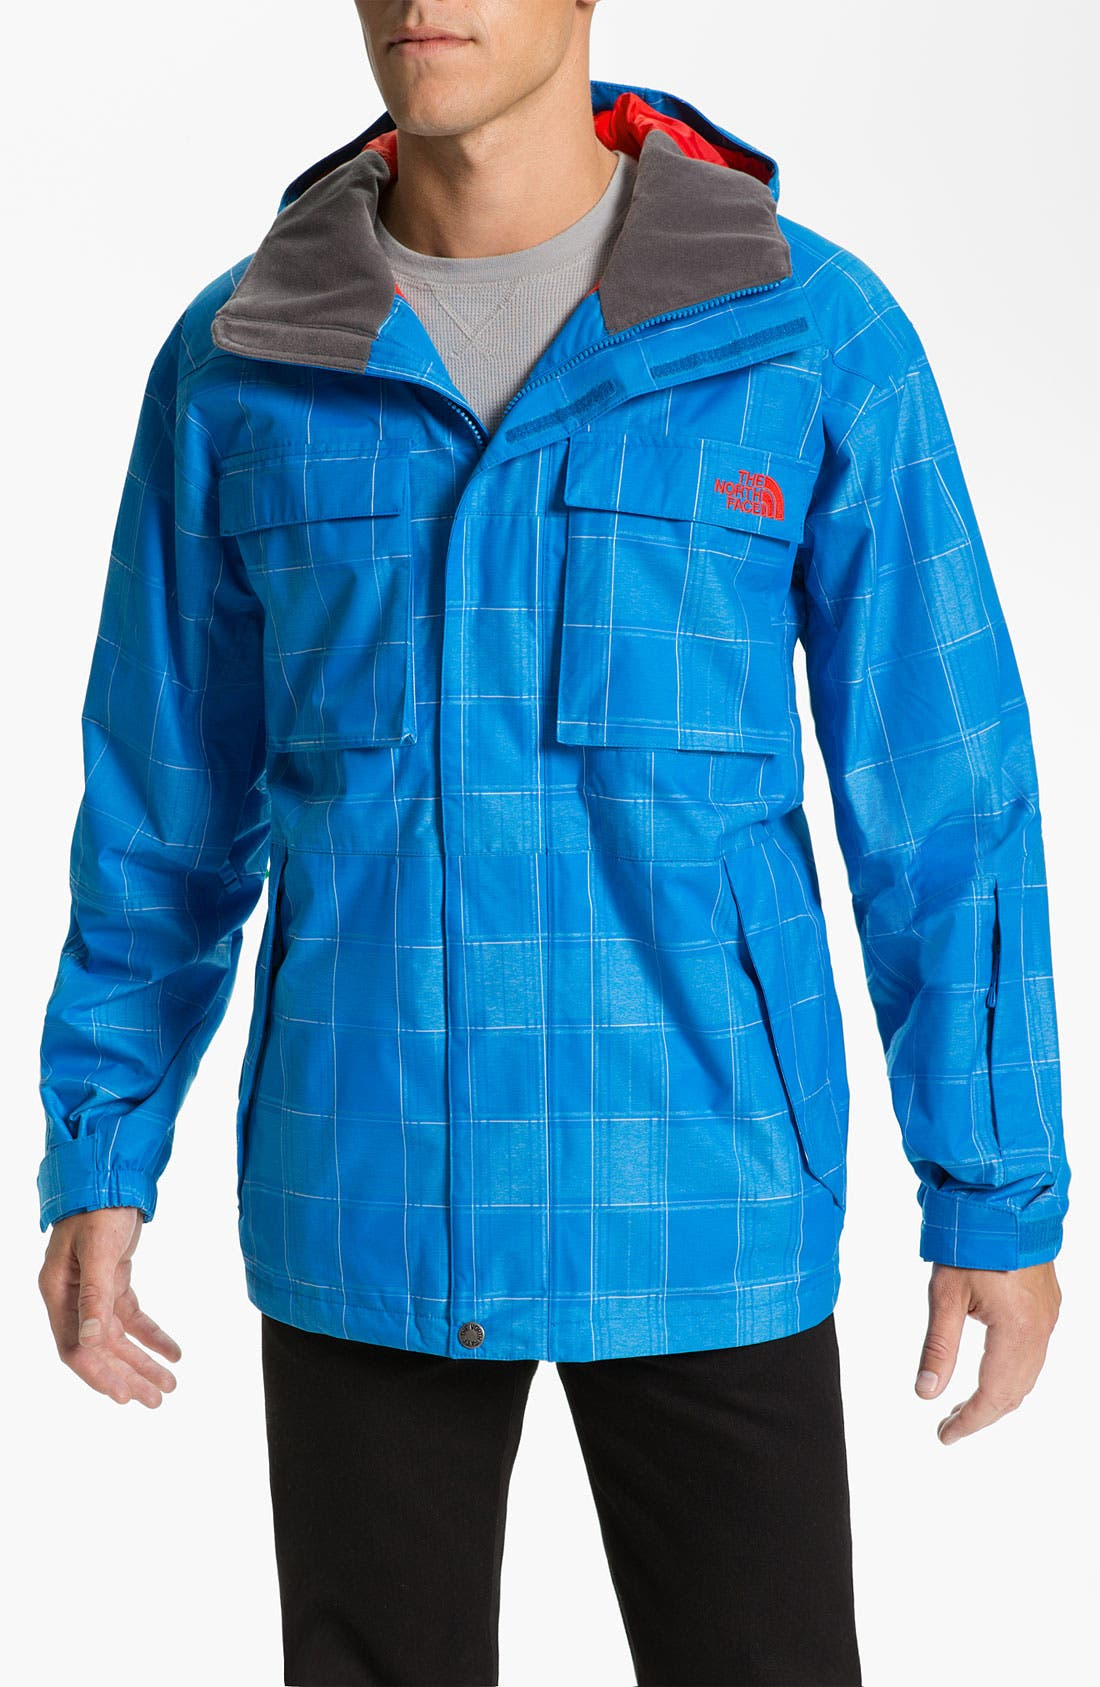 Alternate Image 1 Selected - The North Face 'Alki' Waterproof Hooded Snowsport Jacket